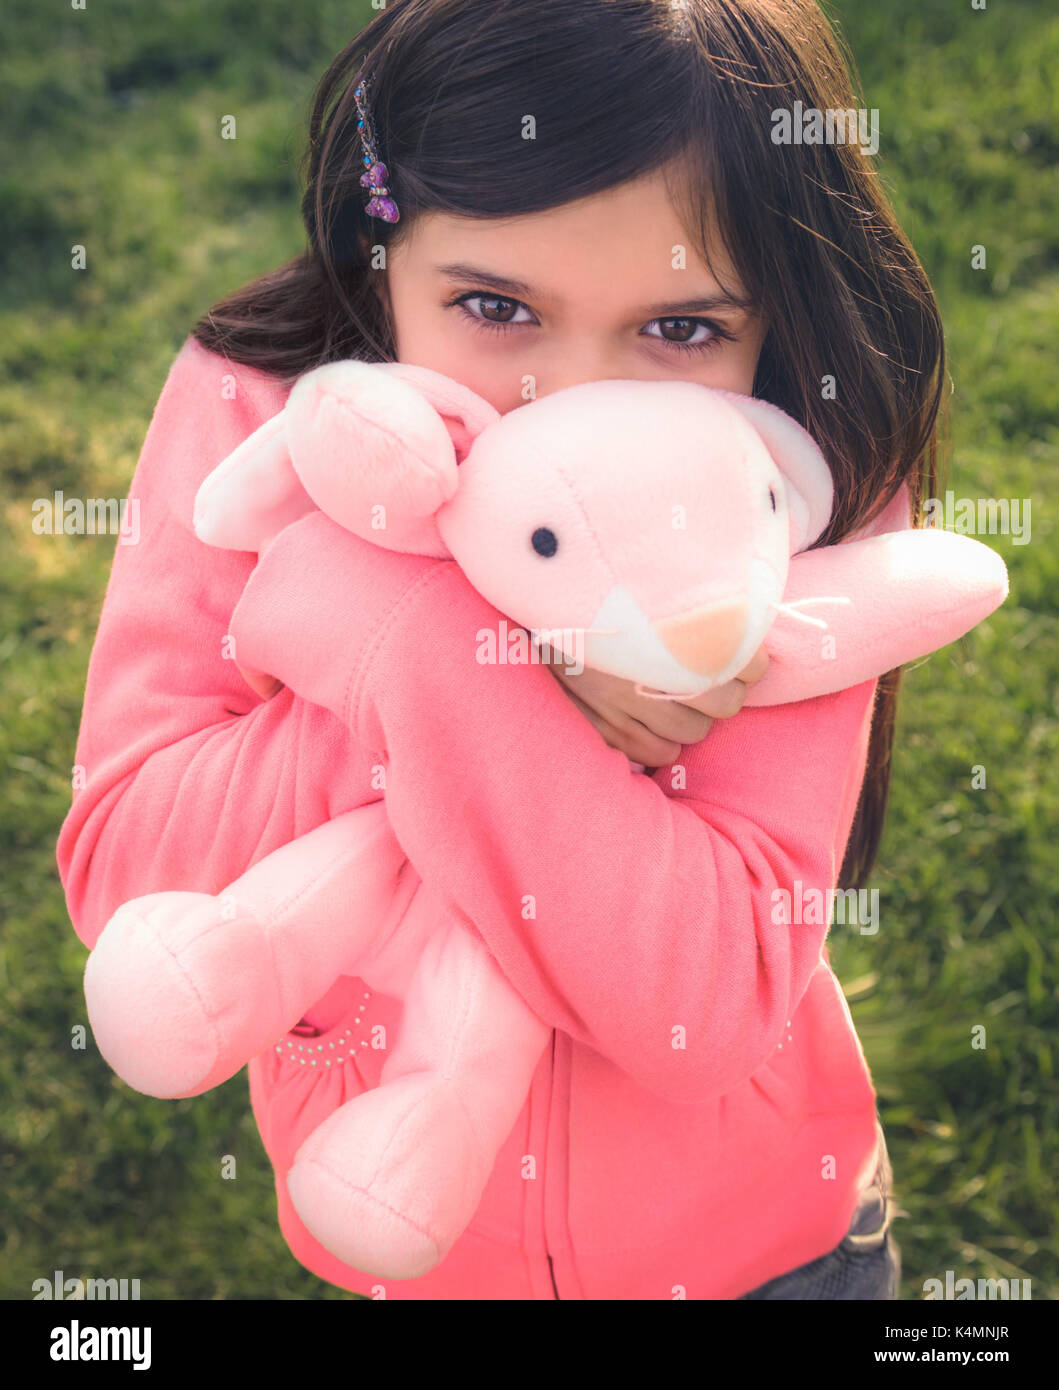 Young girl playing outside with toy stuffed animal. - Stock Image